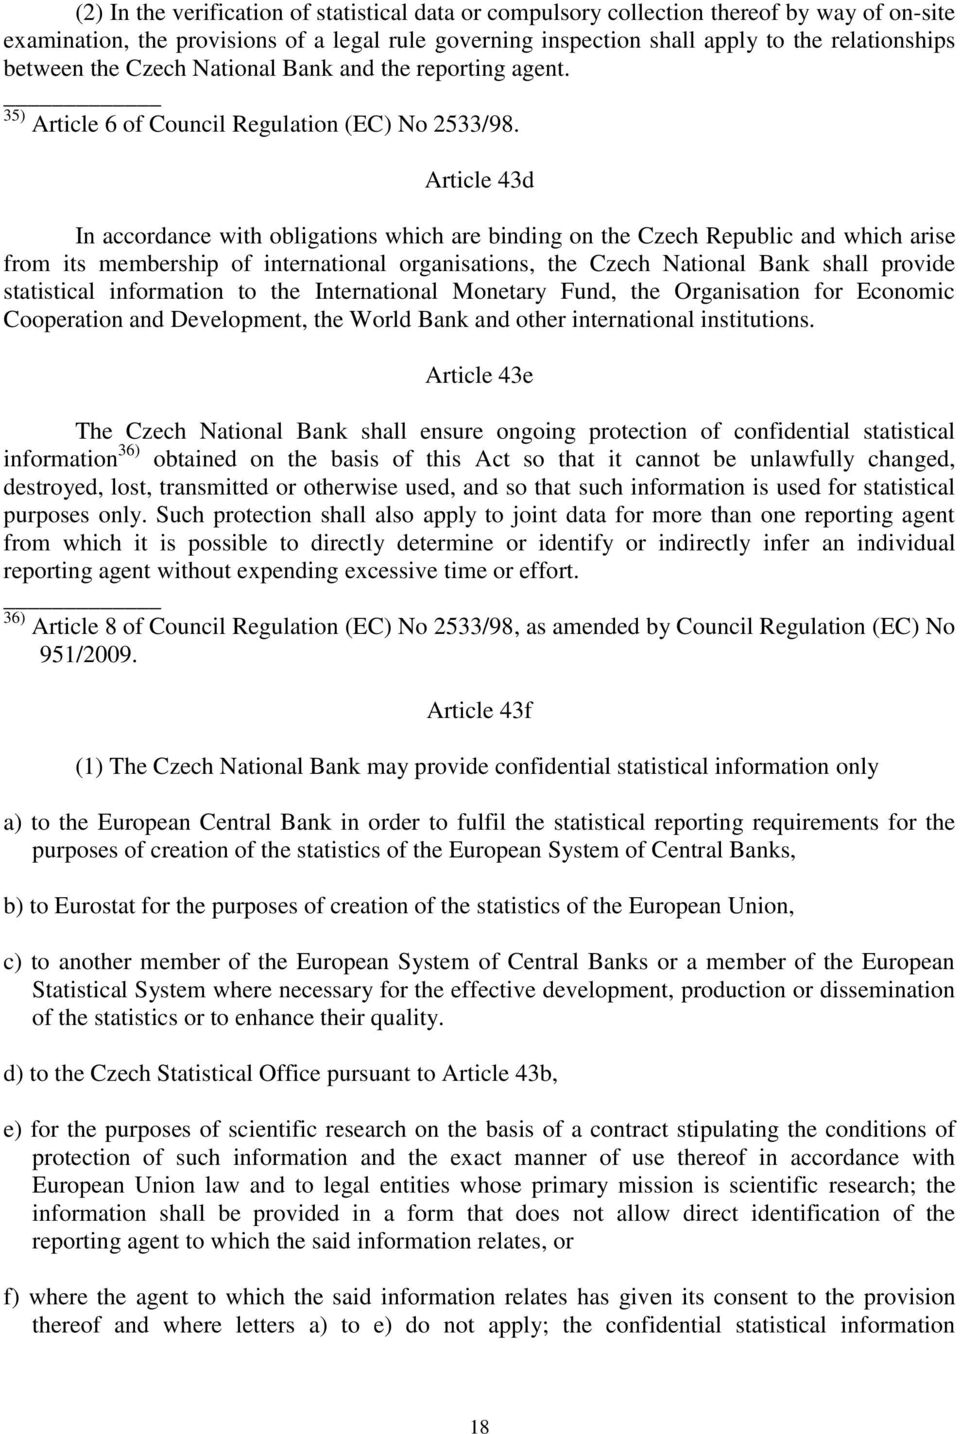 Article 43d In accordance with obligations which are binding on the Czech Republic and which arise from its membership of international organisations, the Czech National Bank shall provide